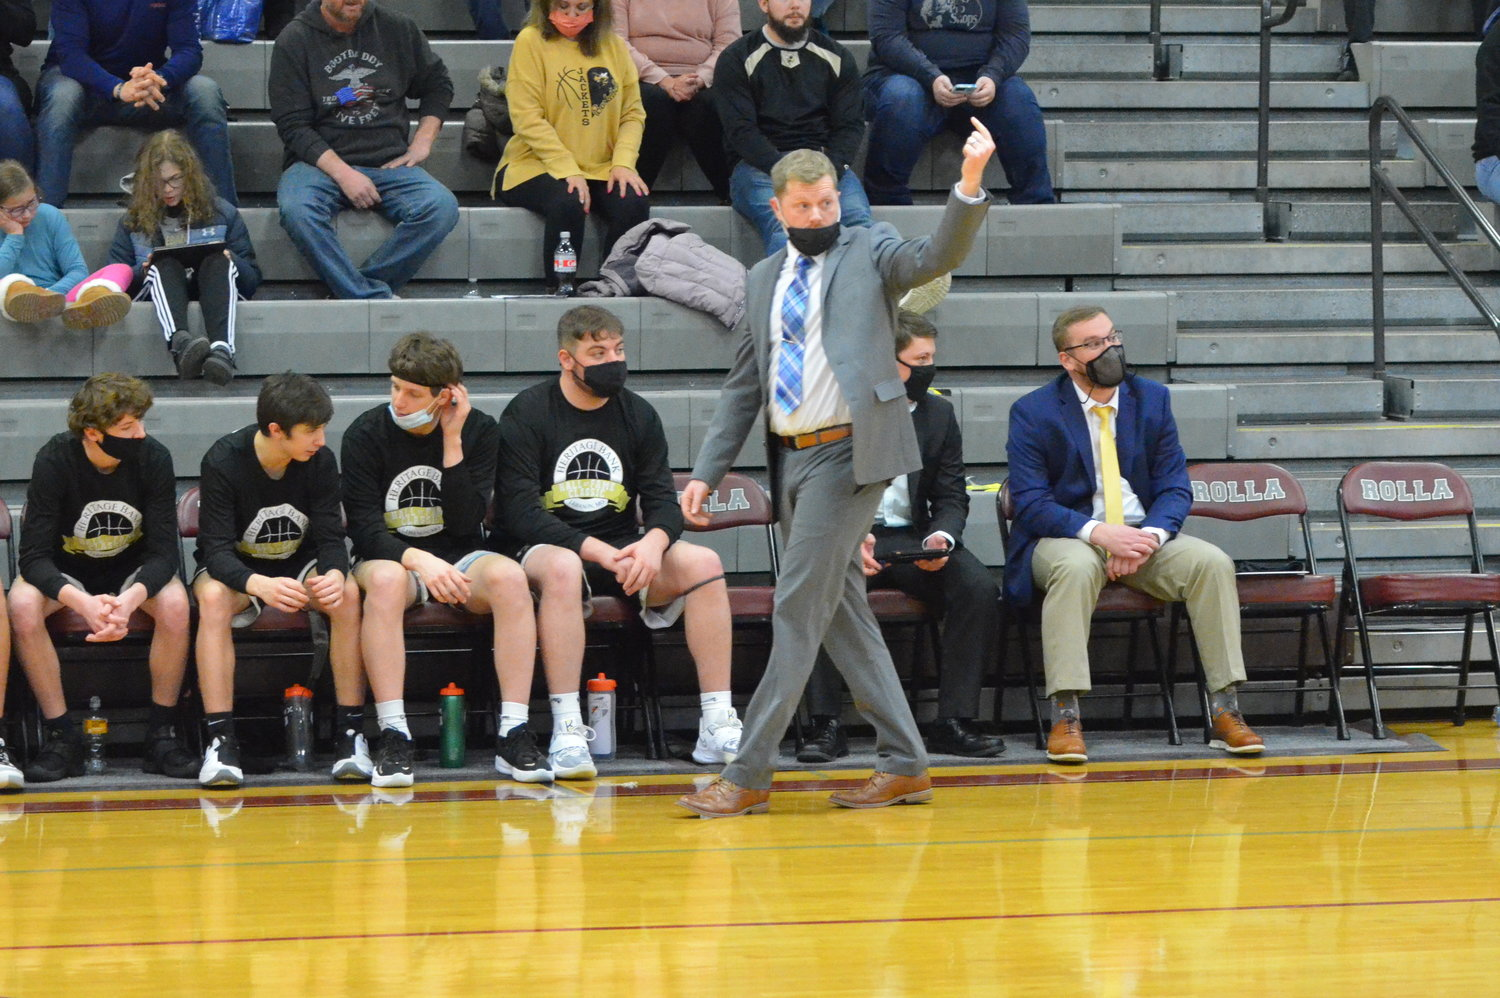 Lebanon basketball coach Zach Miller coaches a varsity high school basketball game against the Rolla Bulldogs on Friday night at Rolla High School. The 'Jackets lost the game, 57-25.